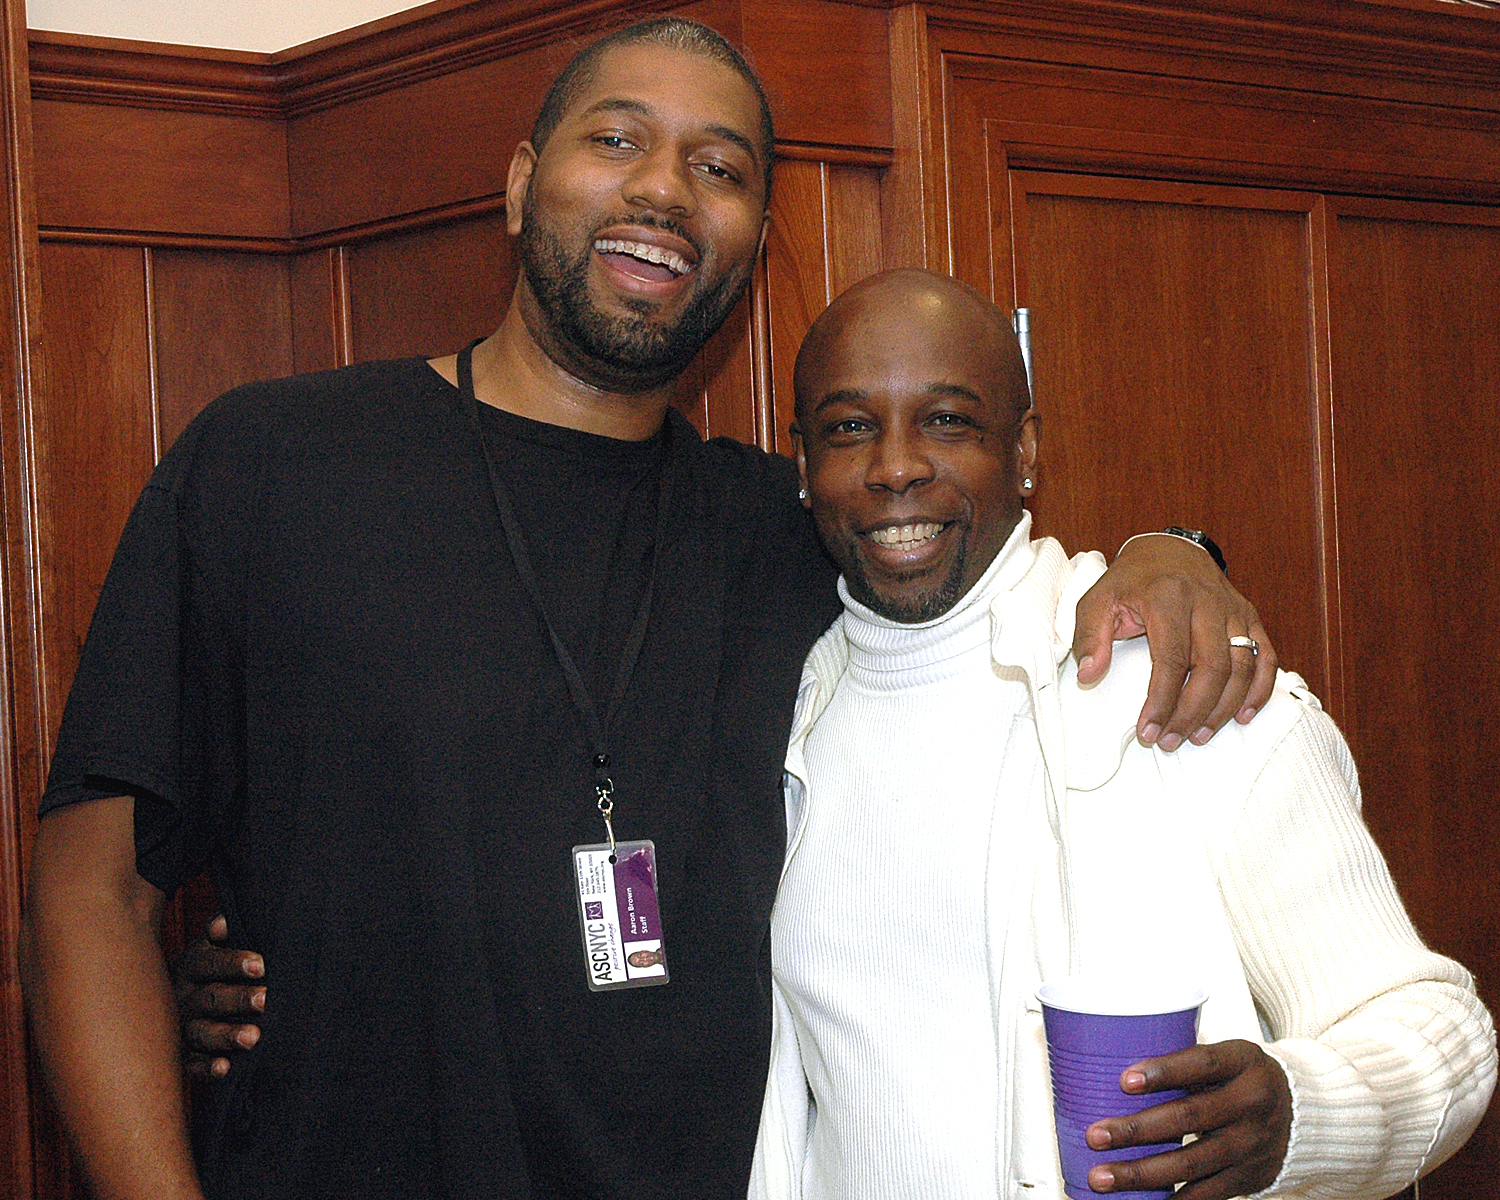 Aaron Brown and Frank Barker